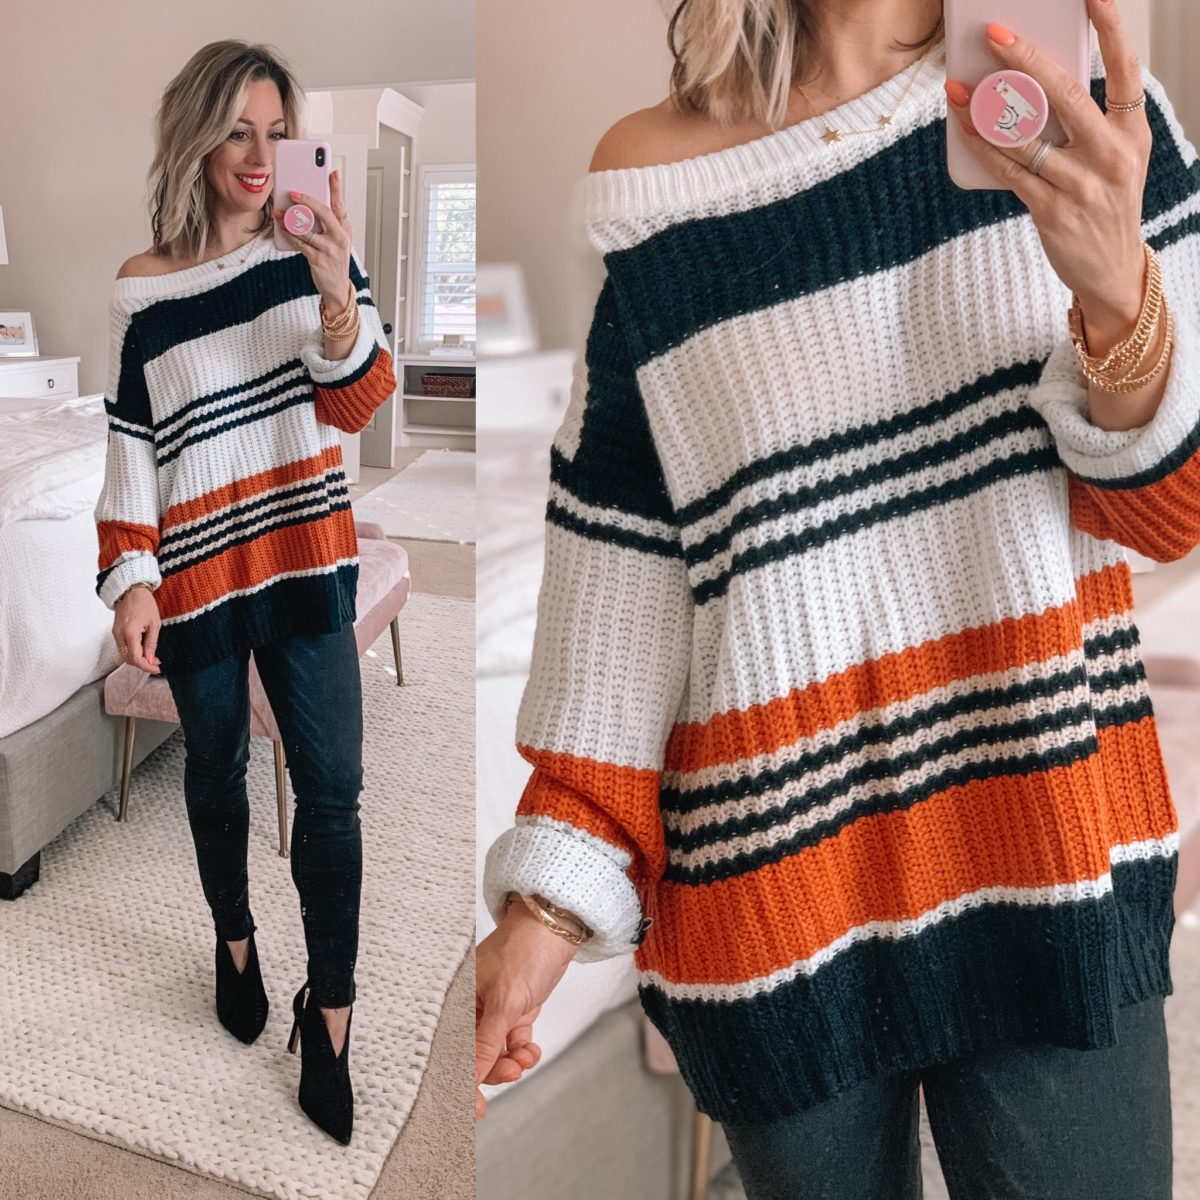 Striped Sweater off the shoulder, Black Jeans, Black Booties